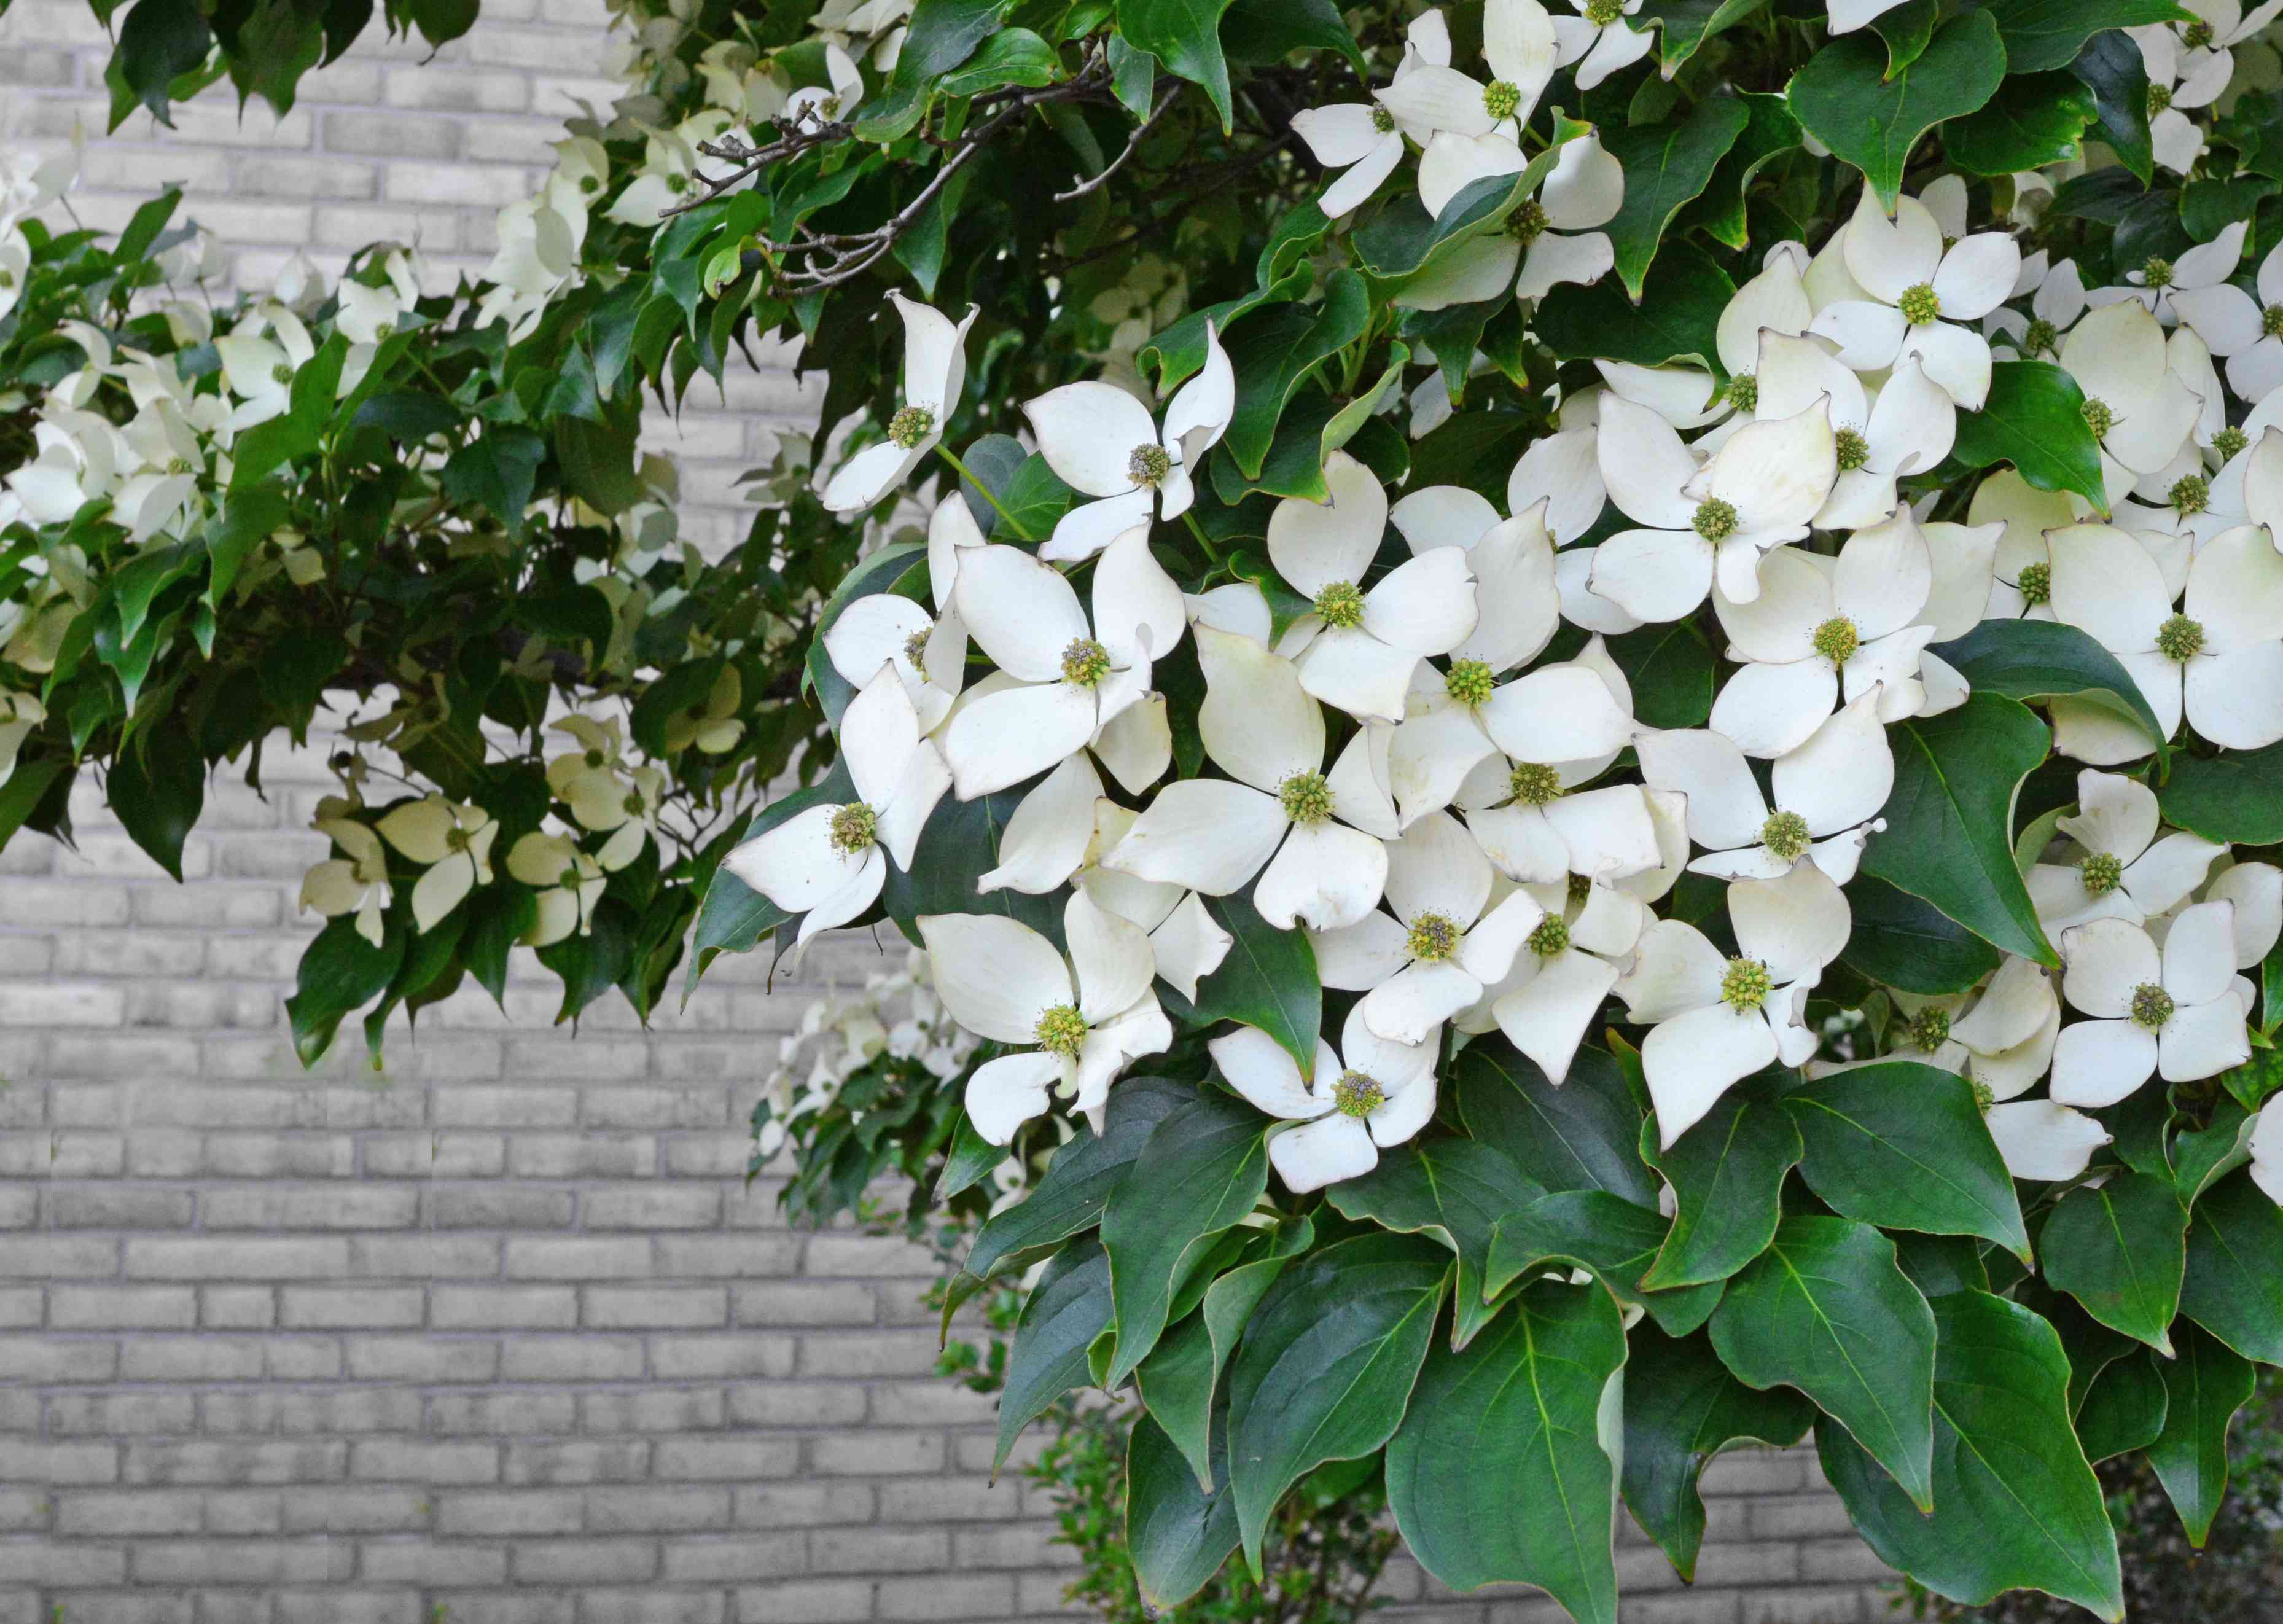 A close-up shot of a dogwood tree in bloom in front of a brick wall